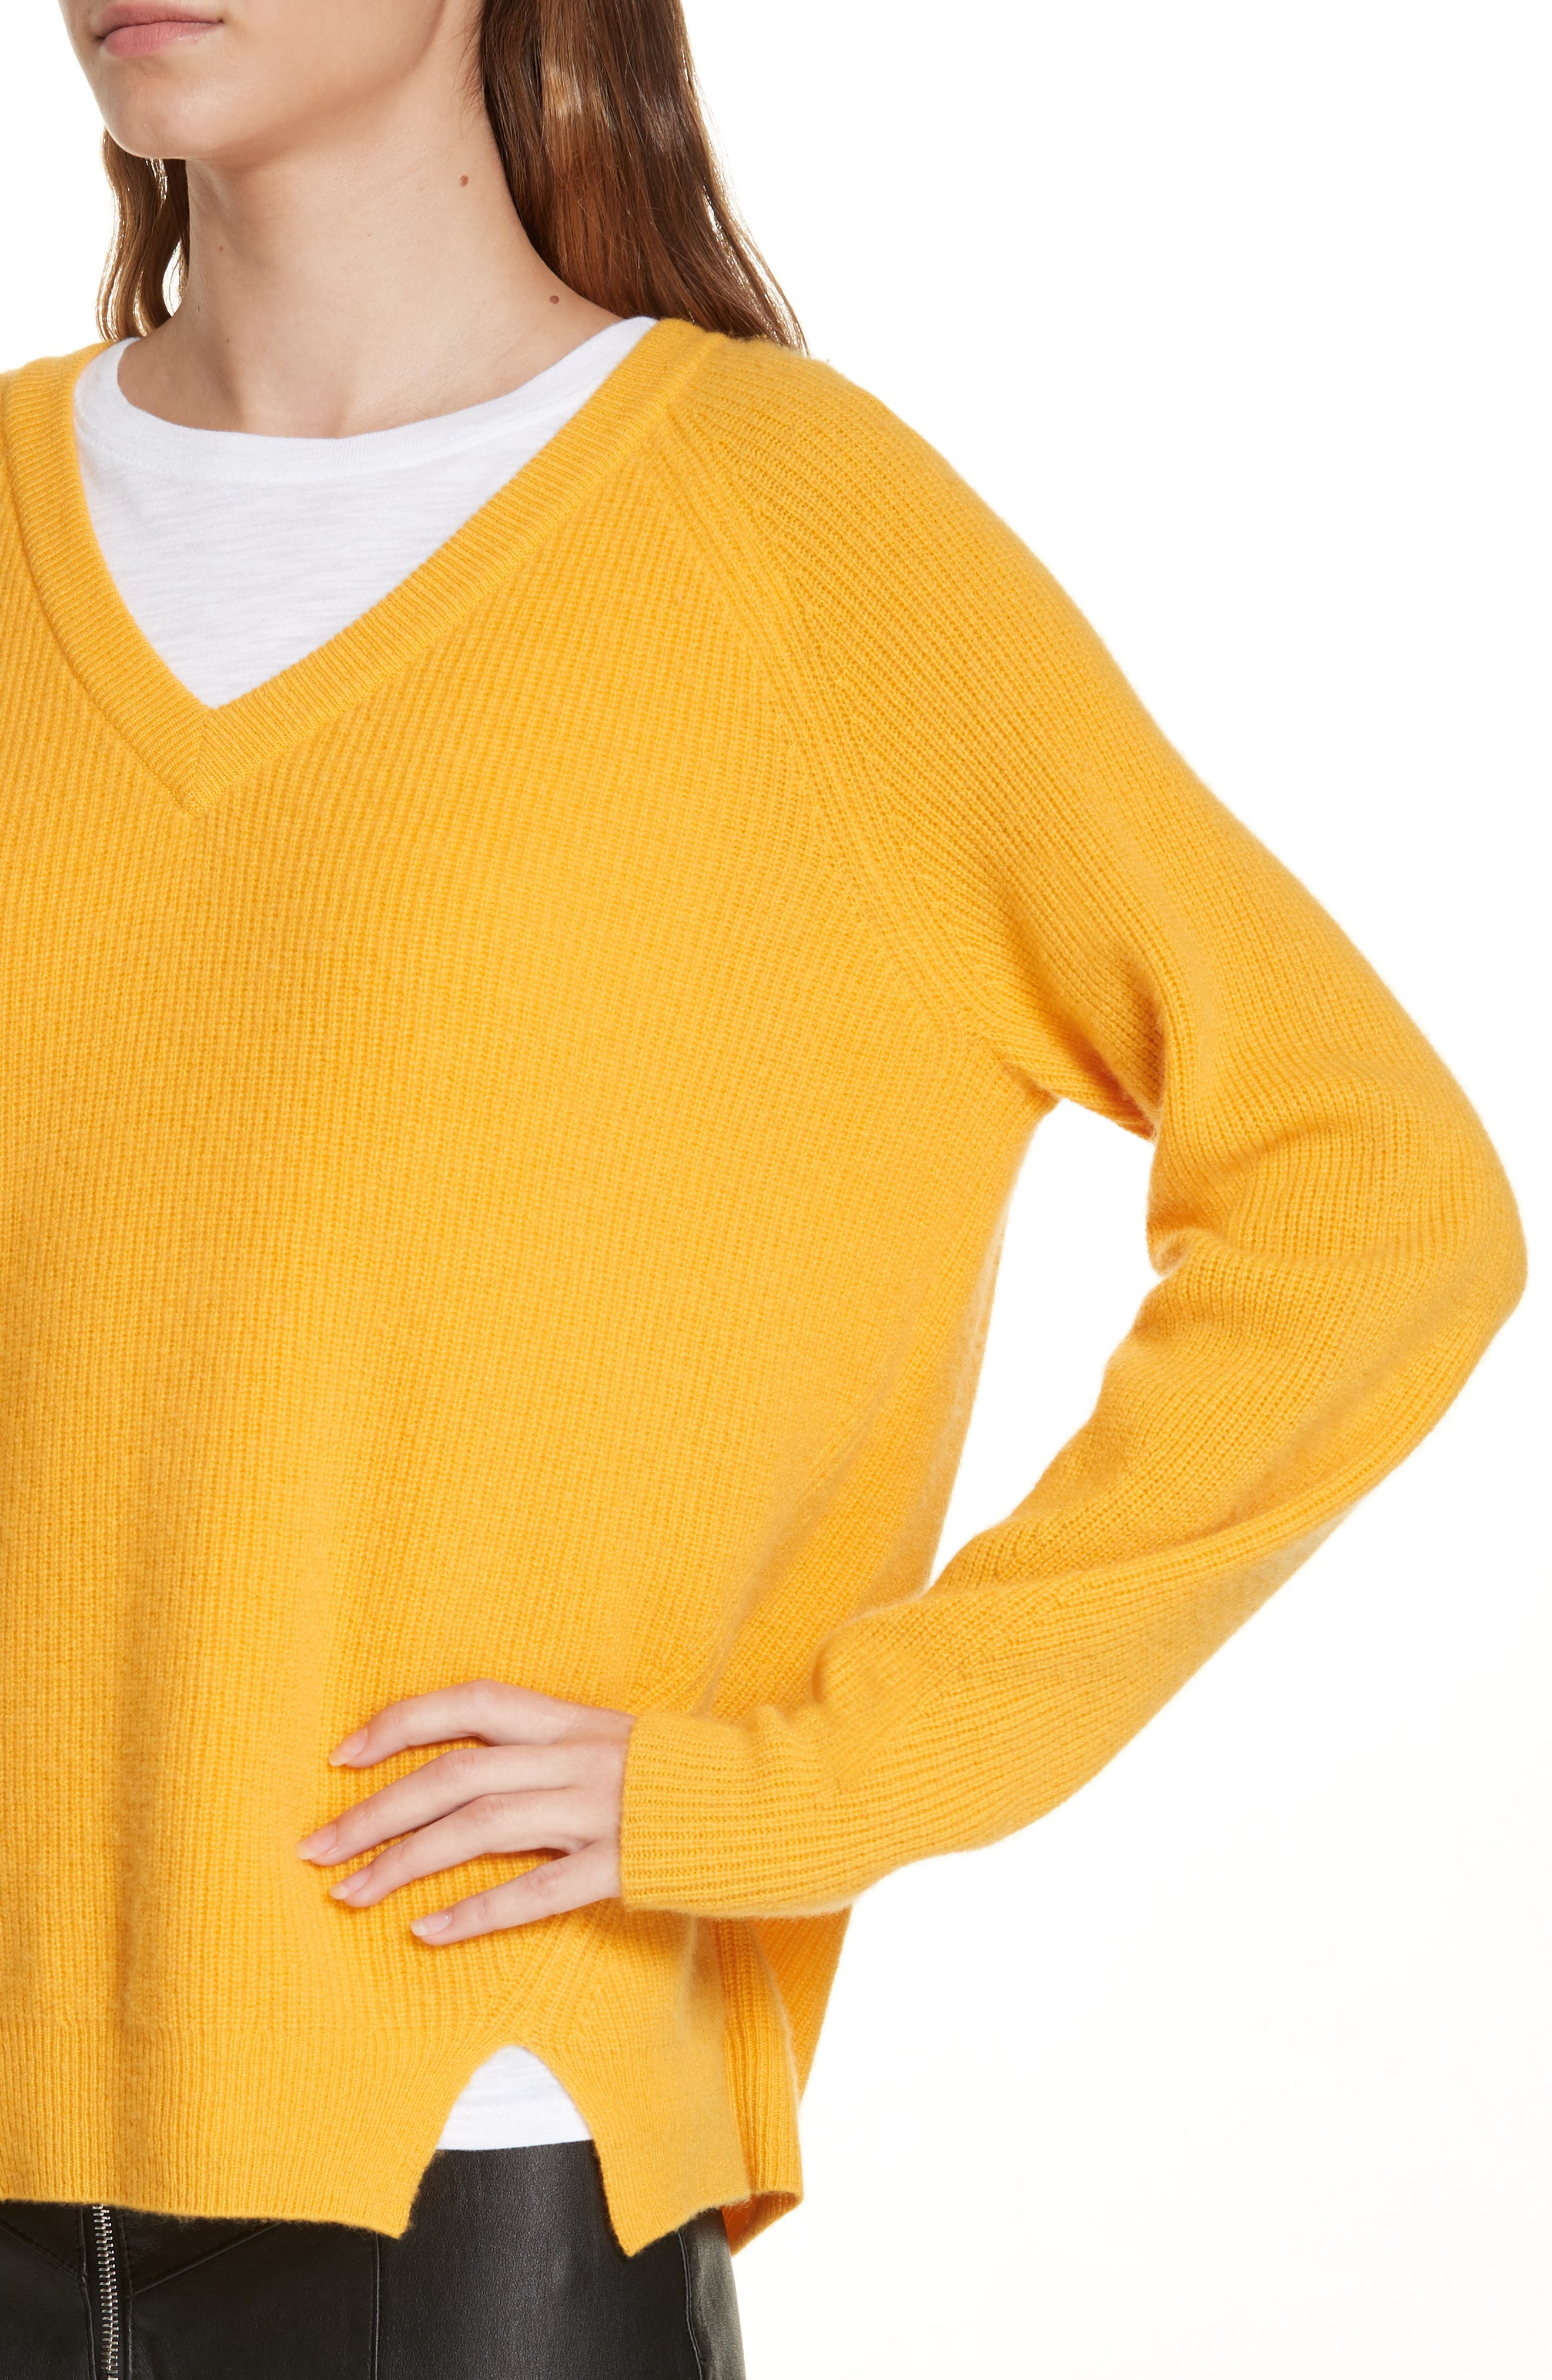 Neely Cashmere Sweater,                             Alternate thumbnail 4, color,                             724